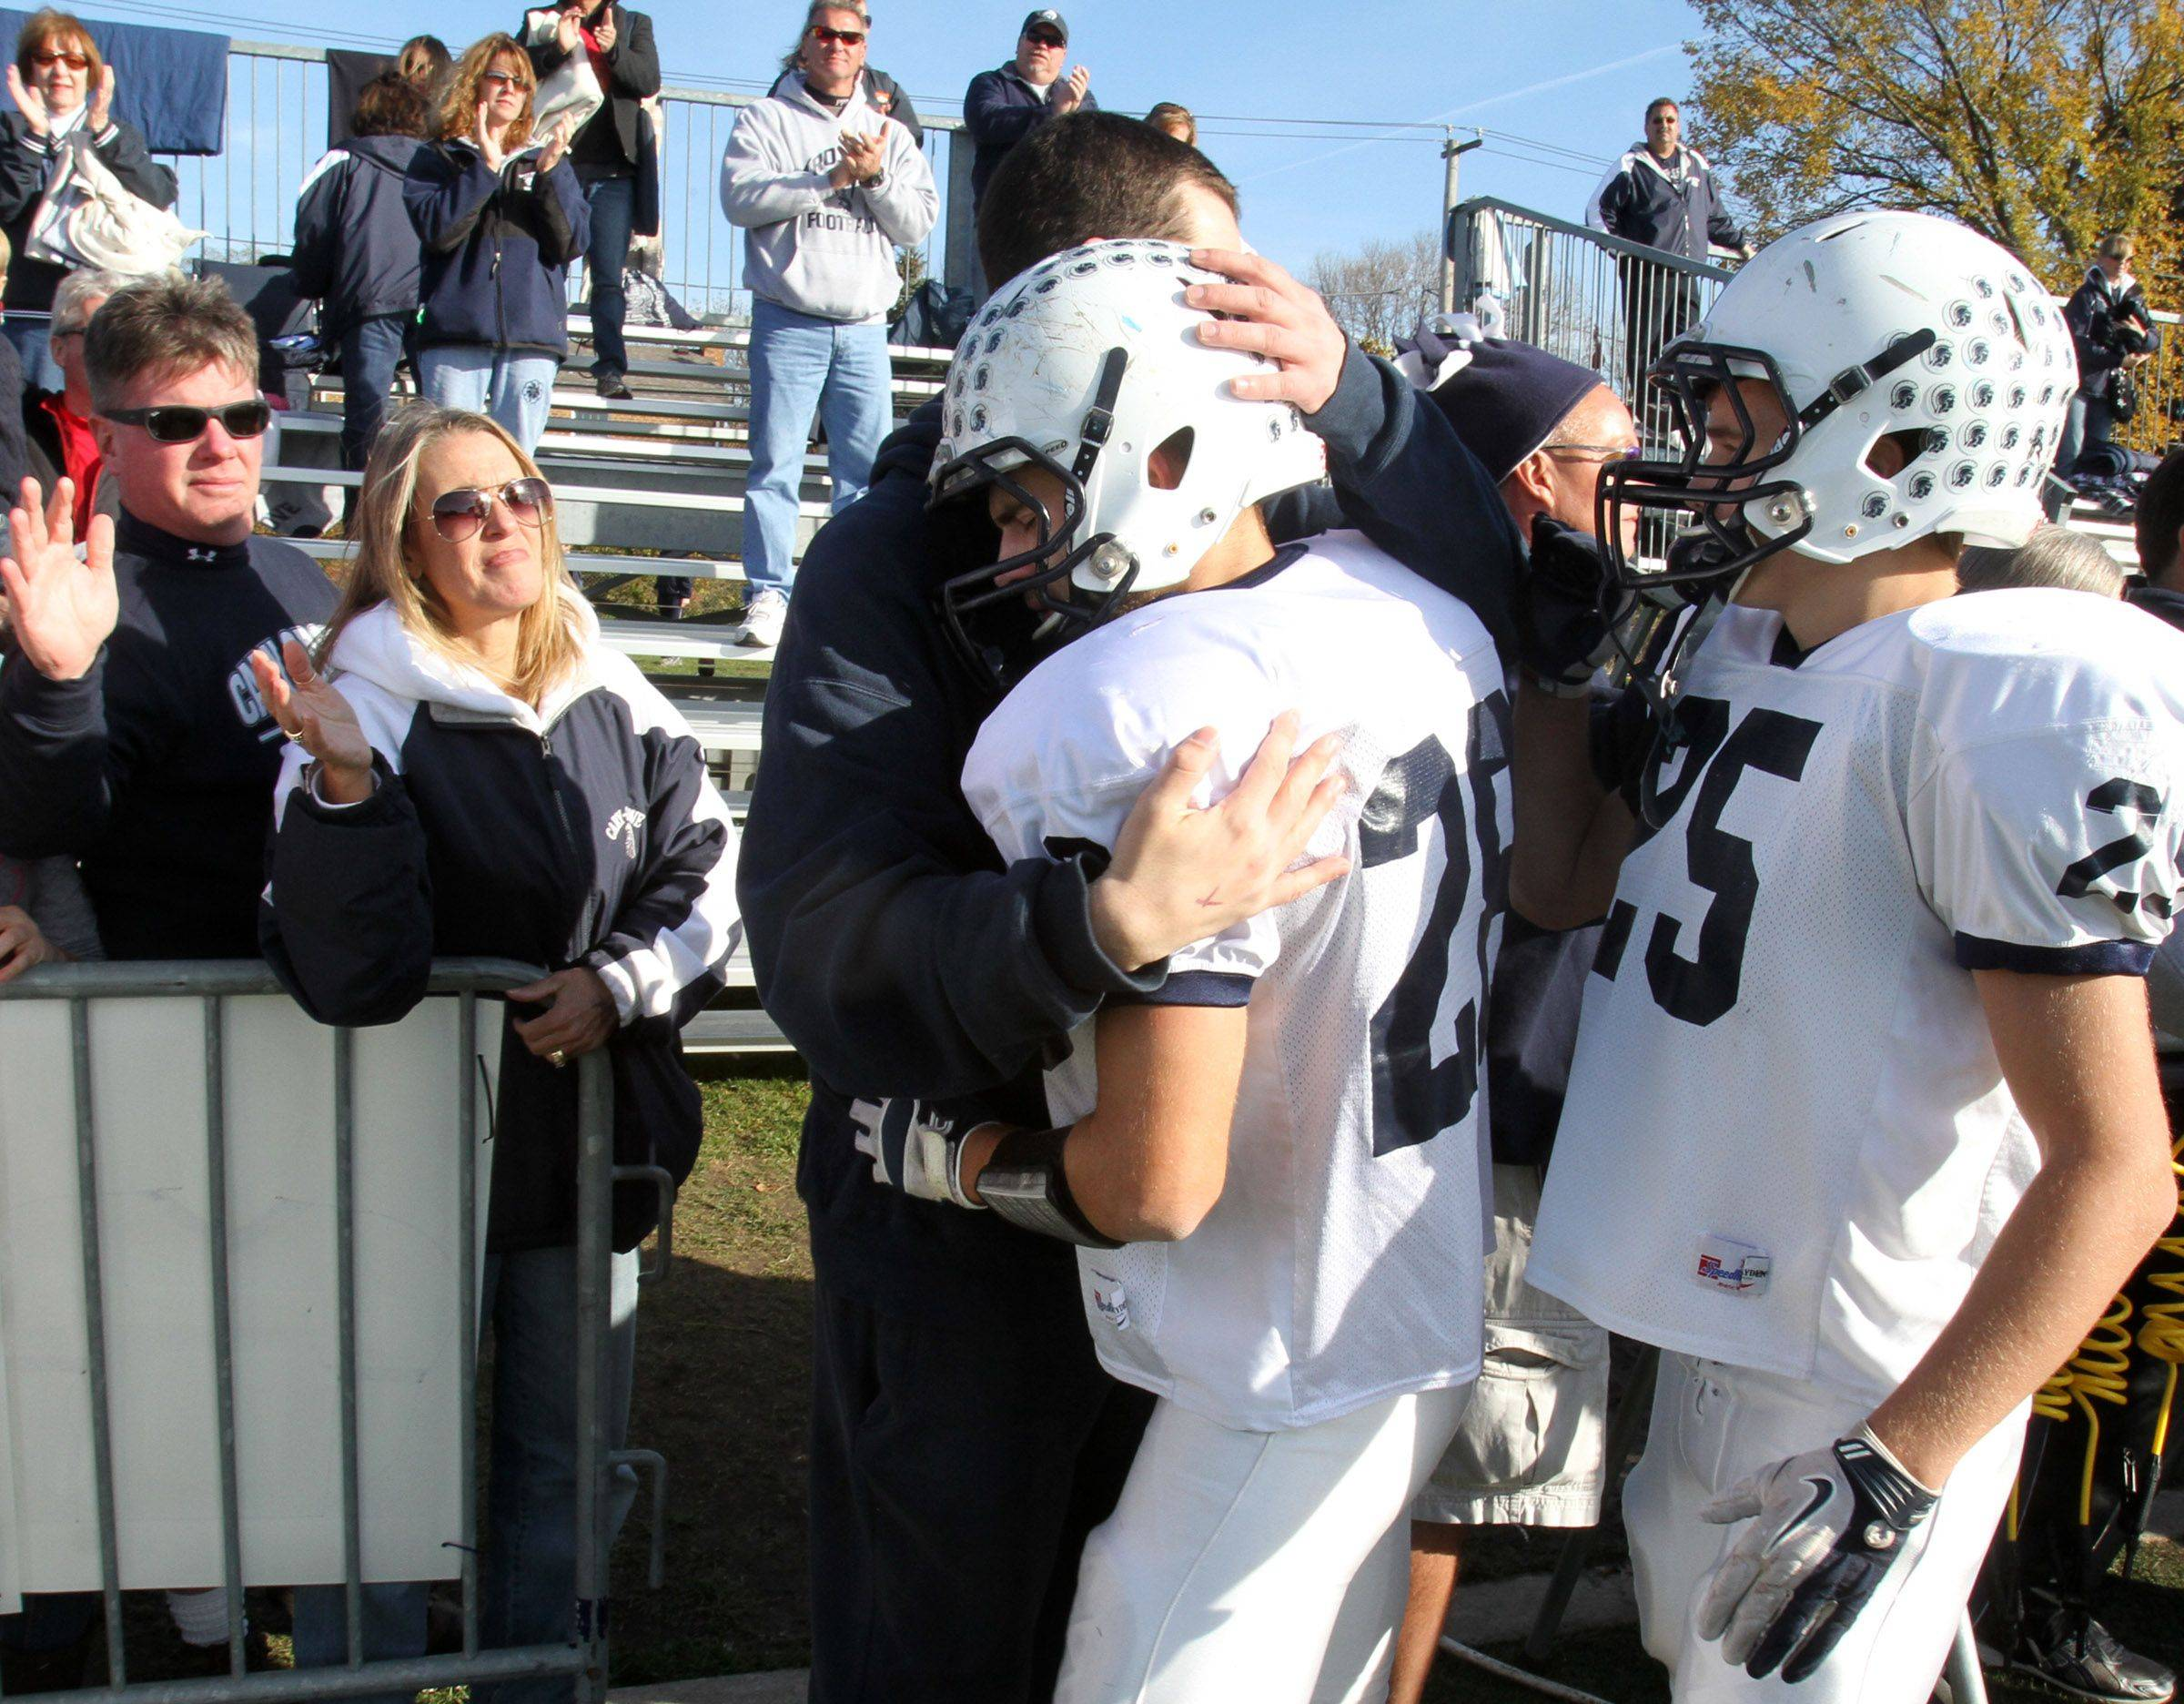 Cary-Grove running-back Connor Carlson gets consoled by a Trojans' coach as fans await after C-G's loss to Nazareth Academy on Saturday, November 5th.